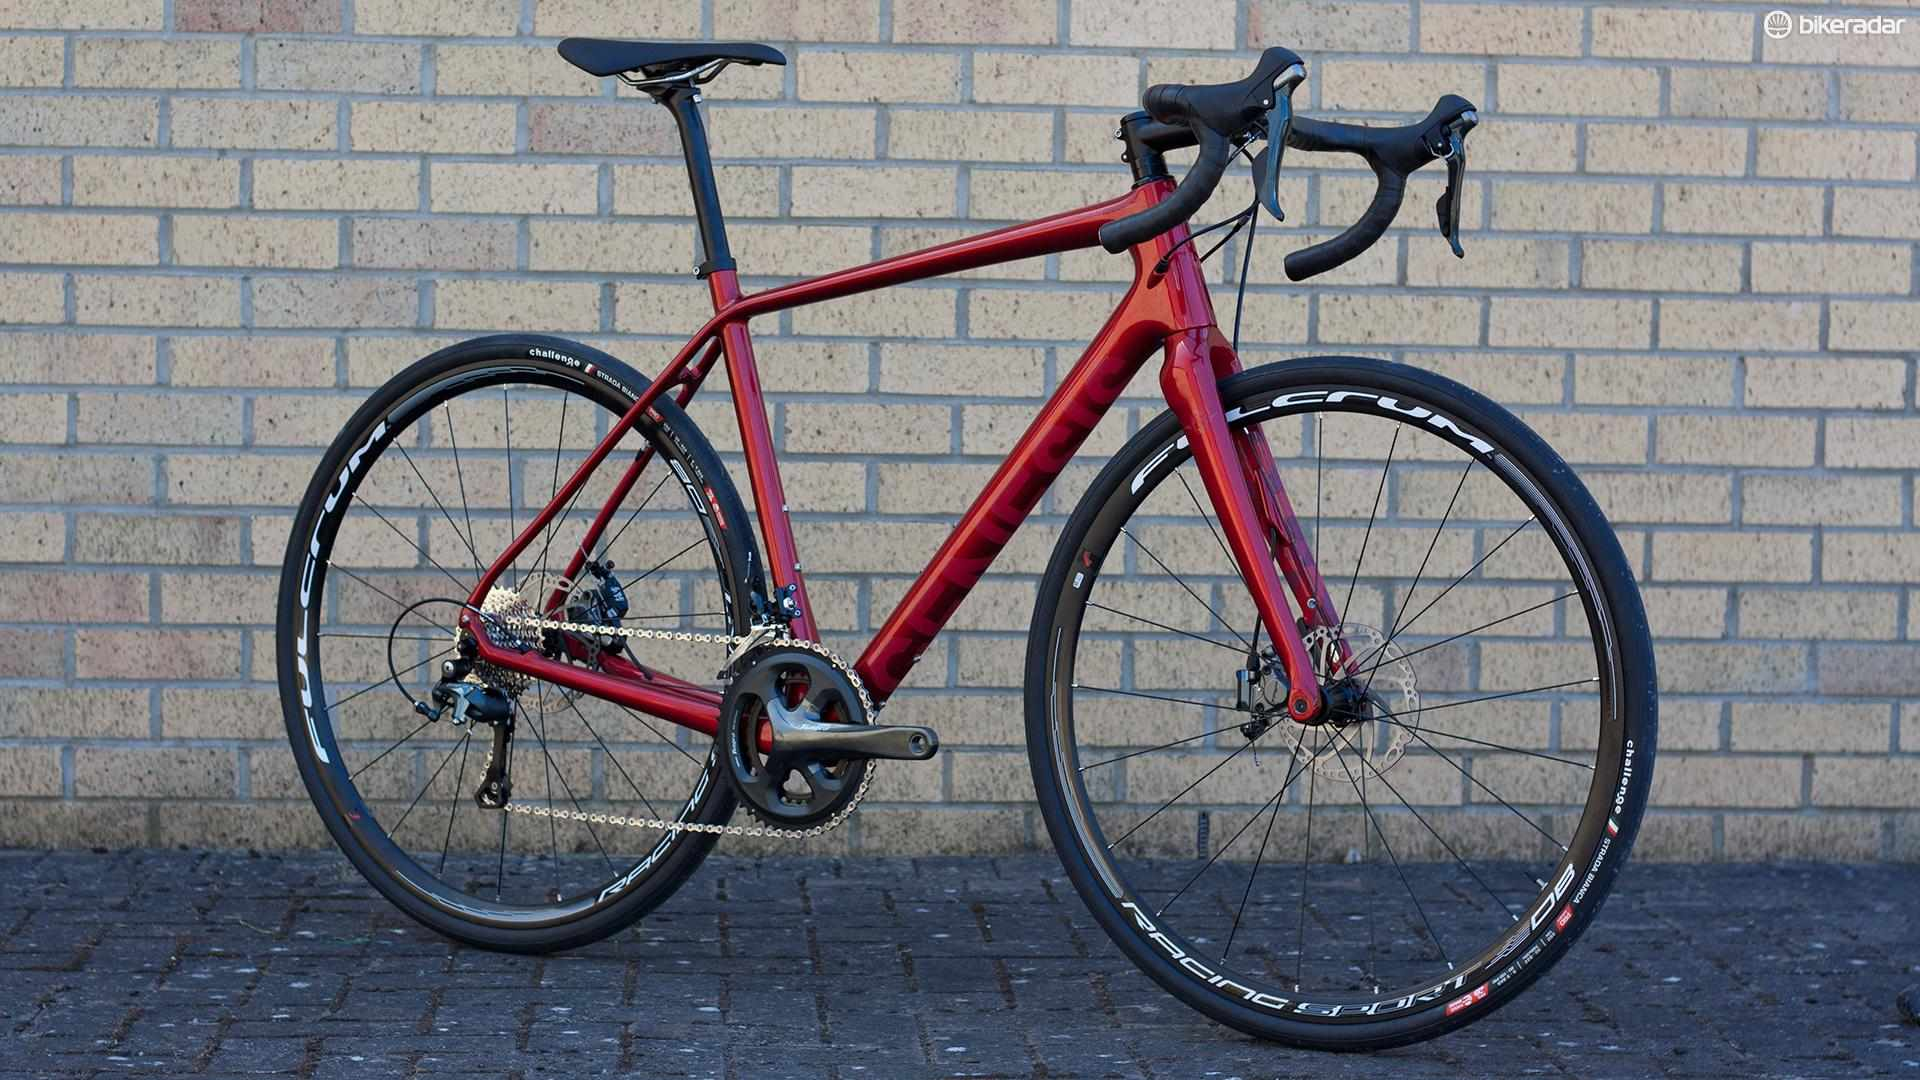 The Genesis Datum 10 packs a full carbon chassis, new Tiagra 10-speed and TRP mechanically actuated hydraulics for just £1,799